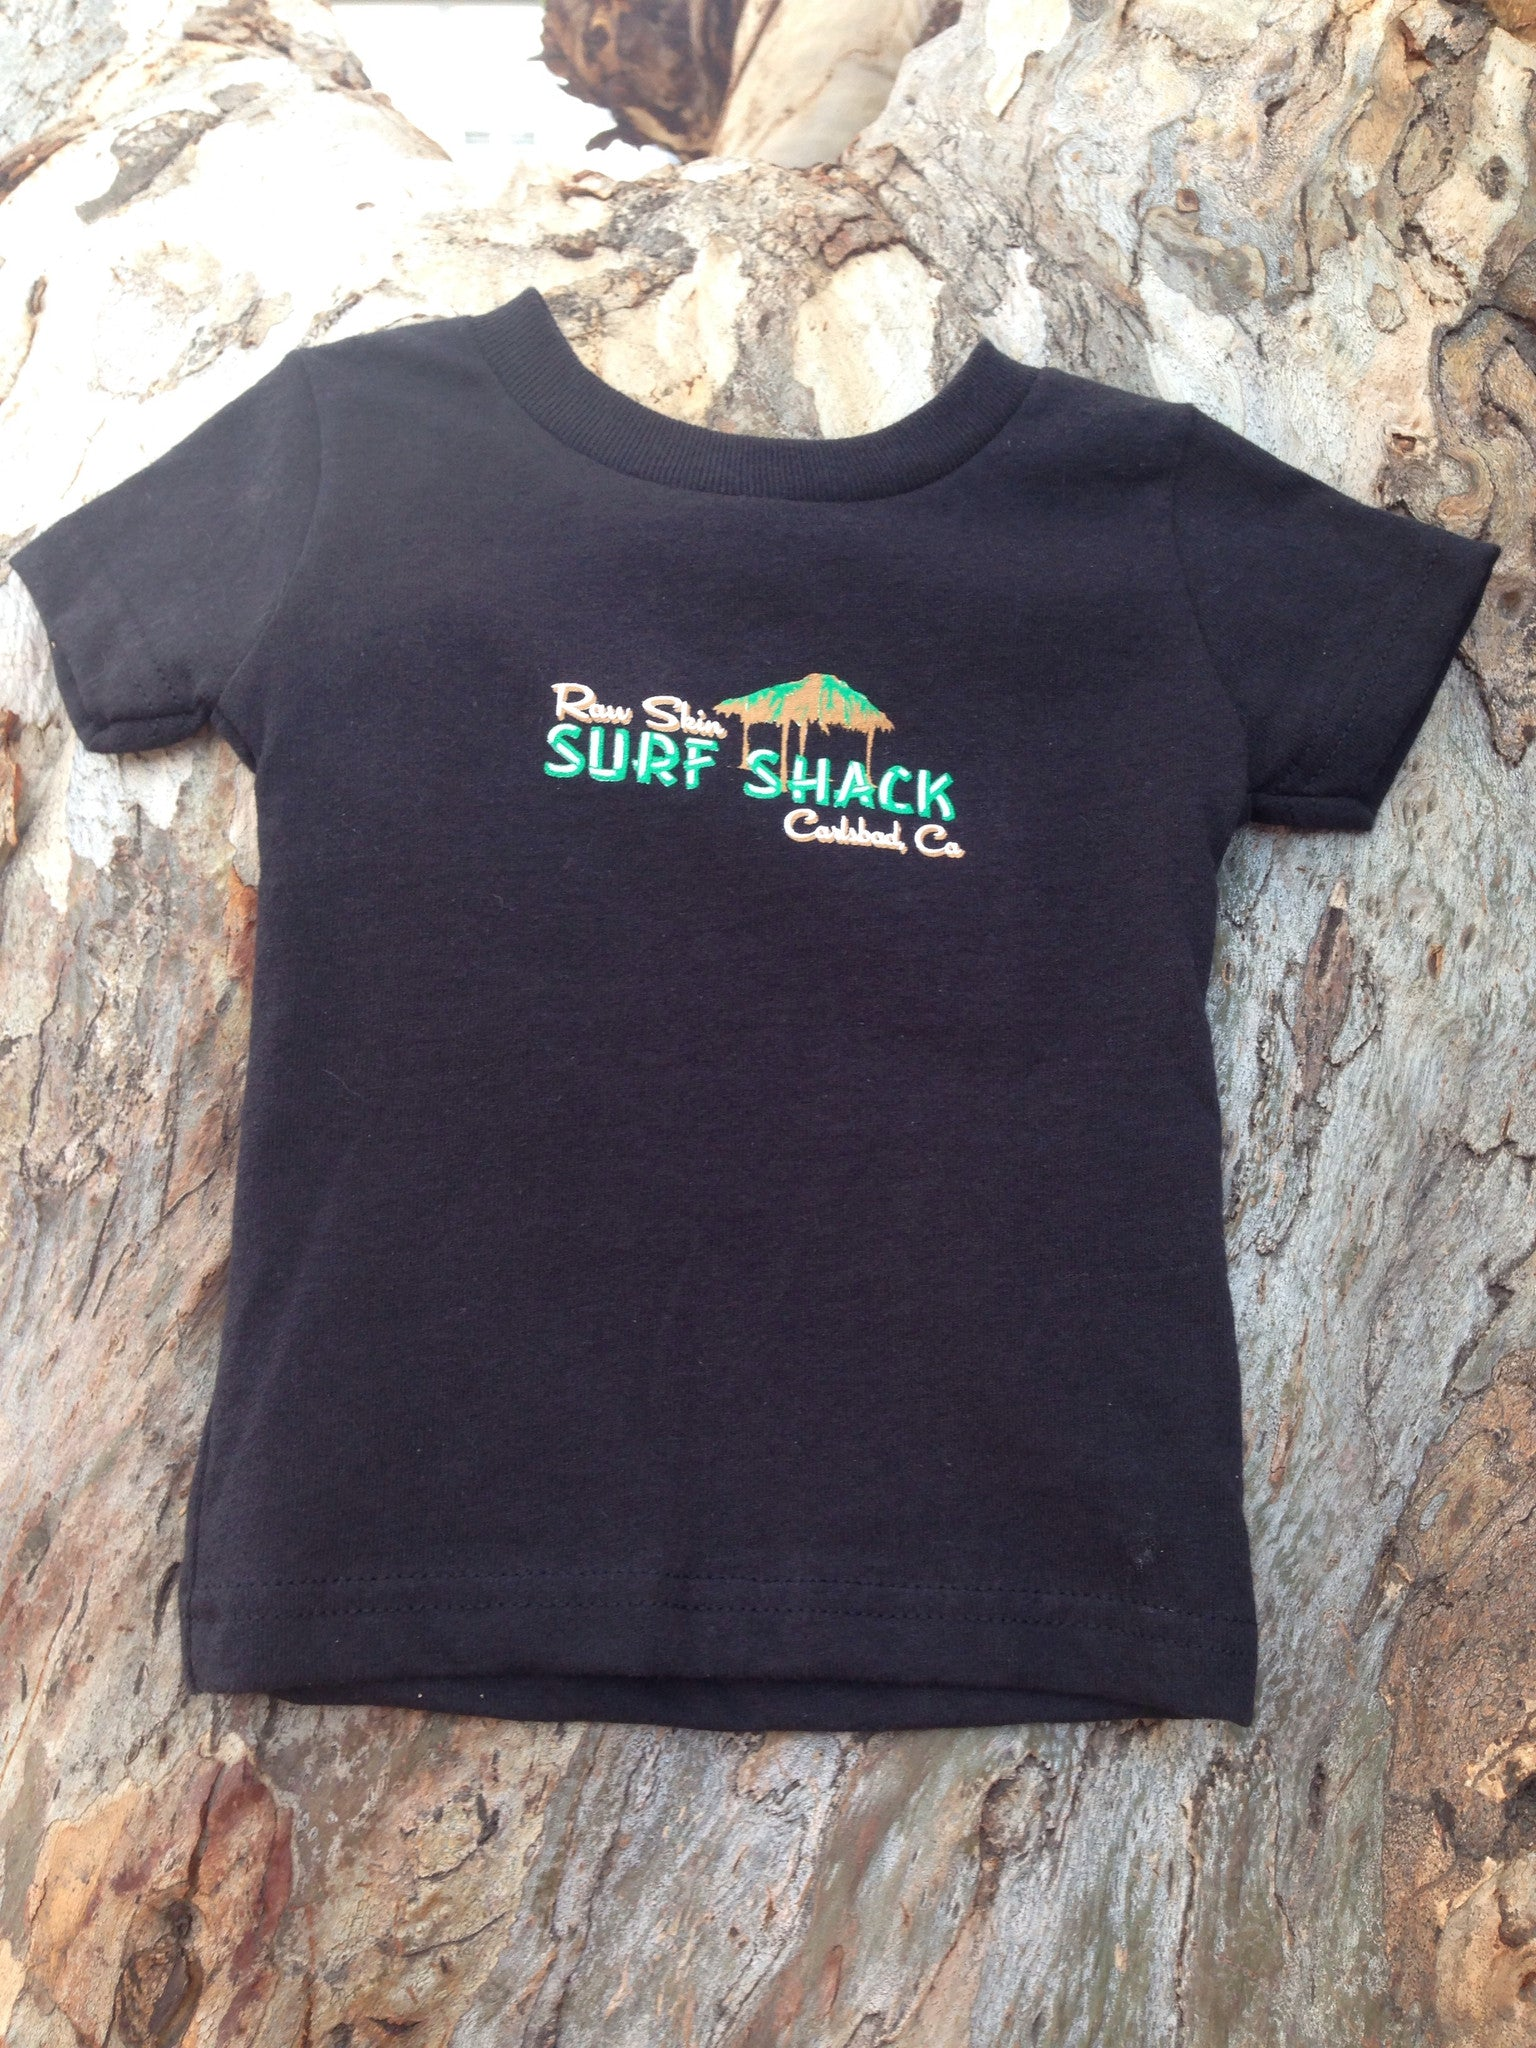 Palapa T-Shirt - Raw Skin Surf Shack